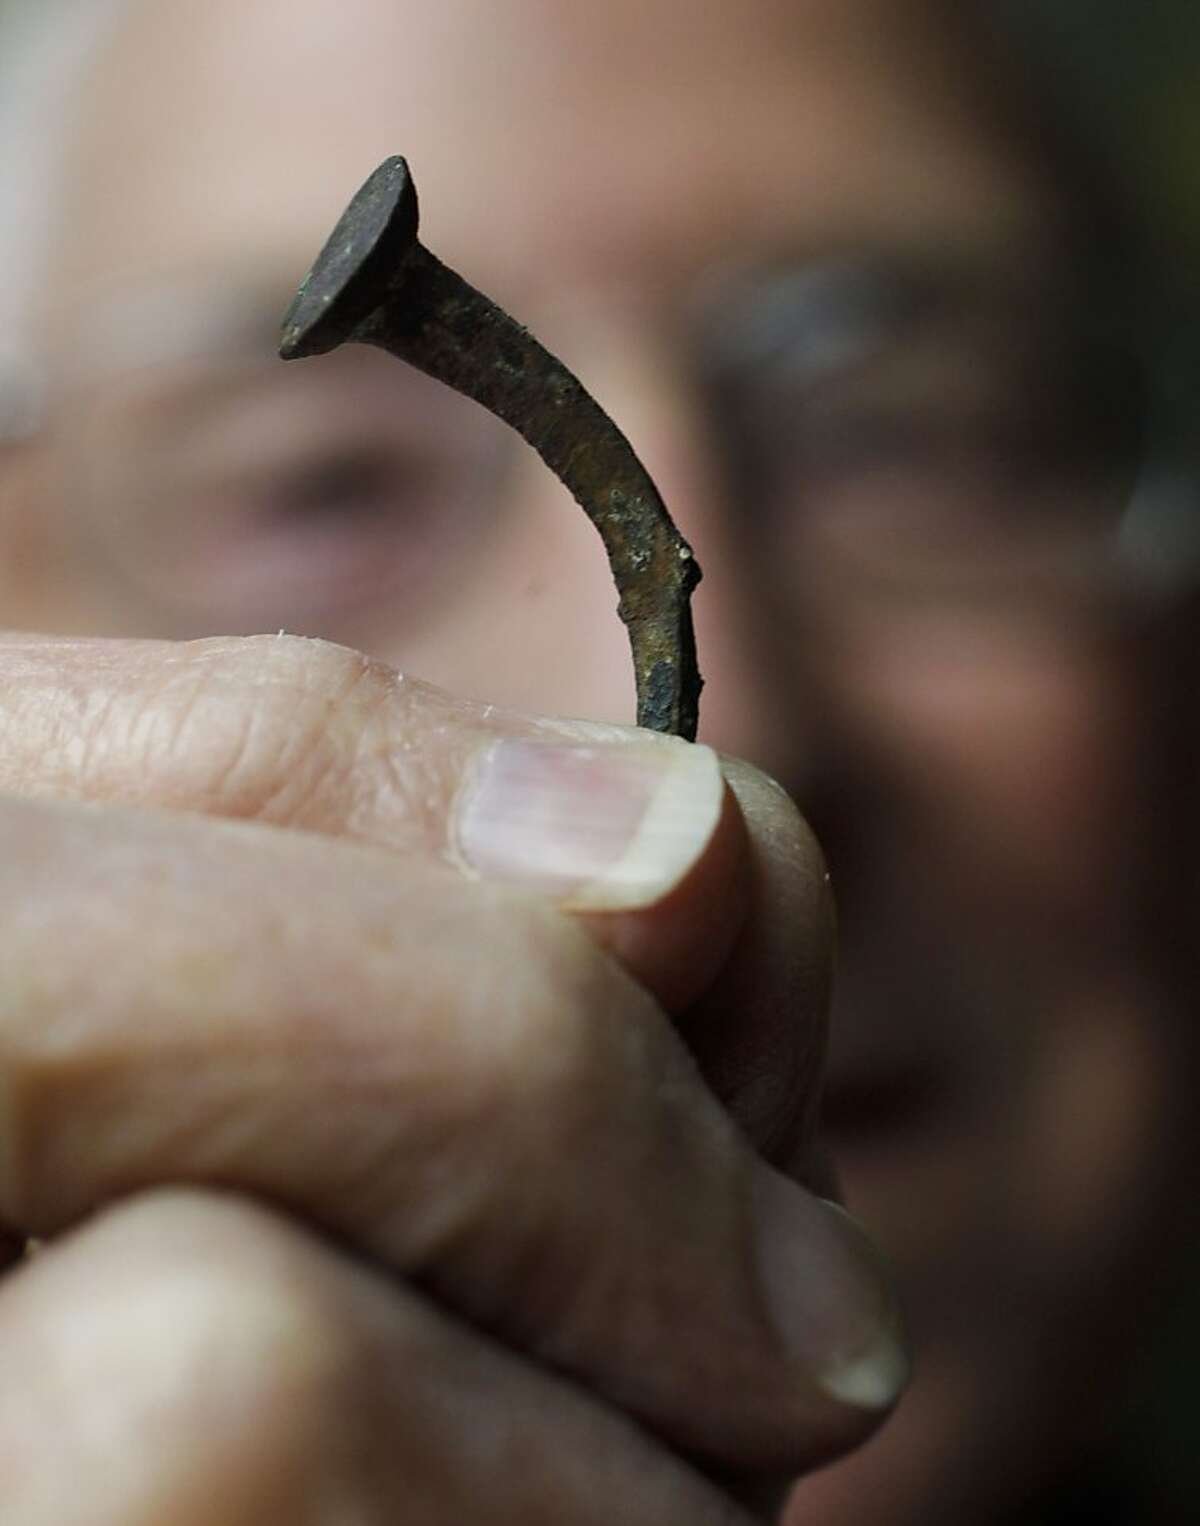 Herb Ford, holds a nail salvaged from the HMS Bounty and now on display at the Pitcairn Islands Study Center on the campus of Pacific Union College on Wednesday Dec. 18, 2013, in Angwiun, Ca. The center is considered to have the world's biggest and best archive on the mutiny on the bounty story of 1789 and was founded by Herb Ford, 84, a former teacher at the college.